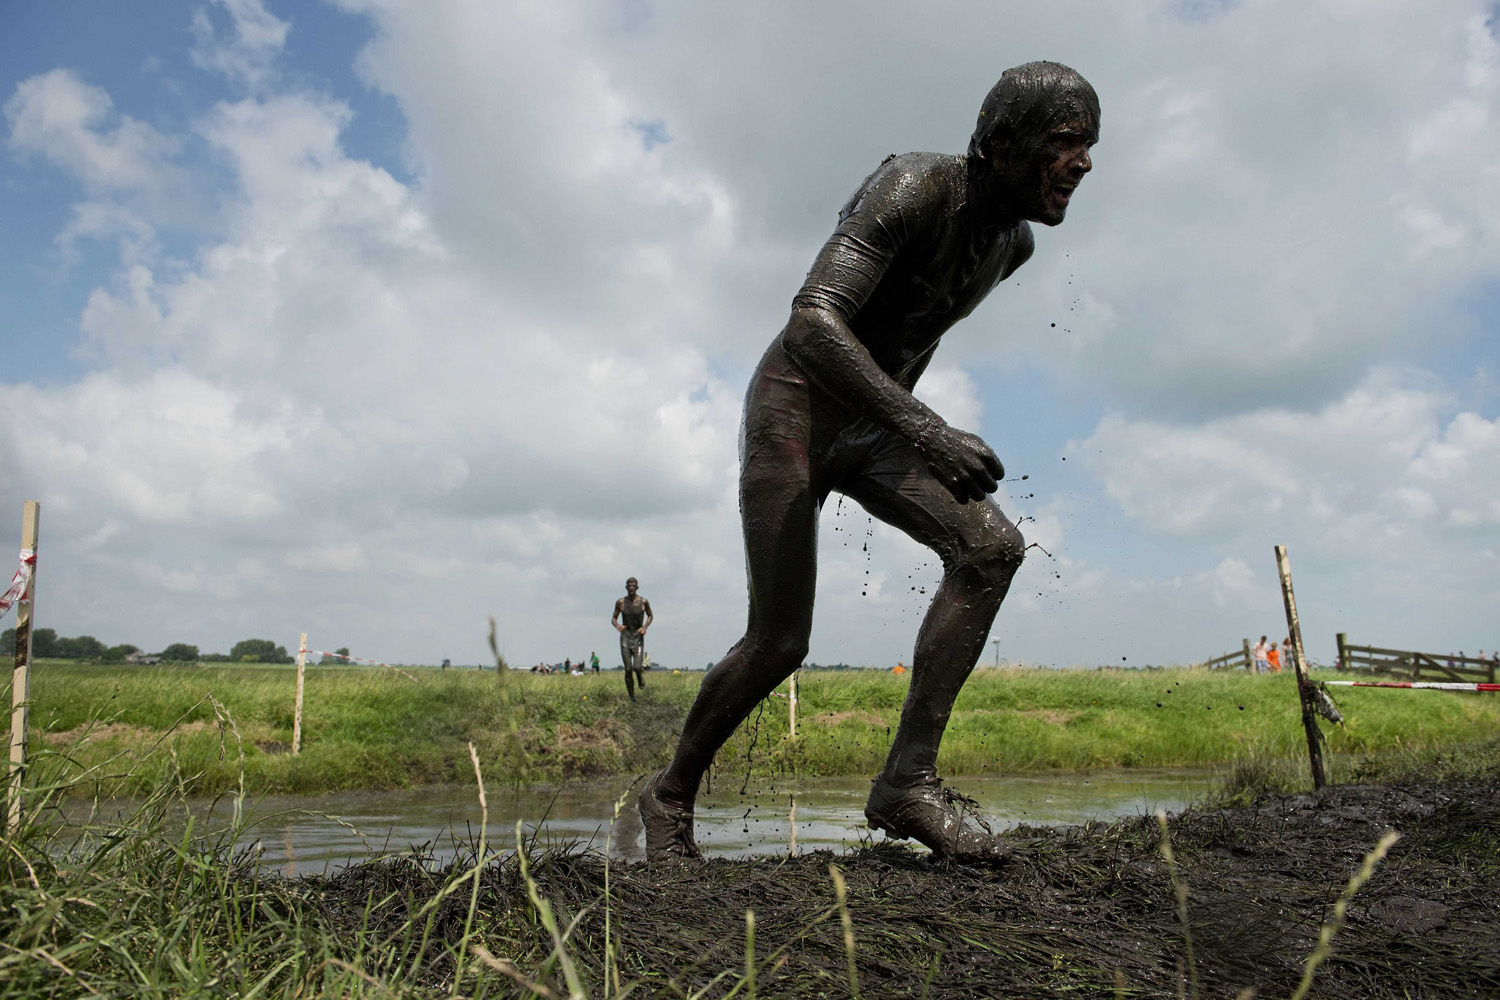 Jul. 13, 2014. A participant gets out of the water and continues on a muddy rack in the Dutch countryside during the so-called prutmarathon a race around a farmland track near Schermerhorn, the Netherlands.